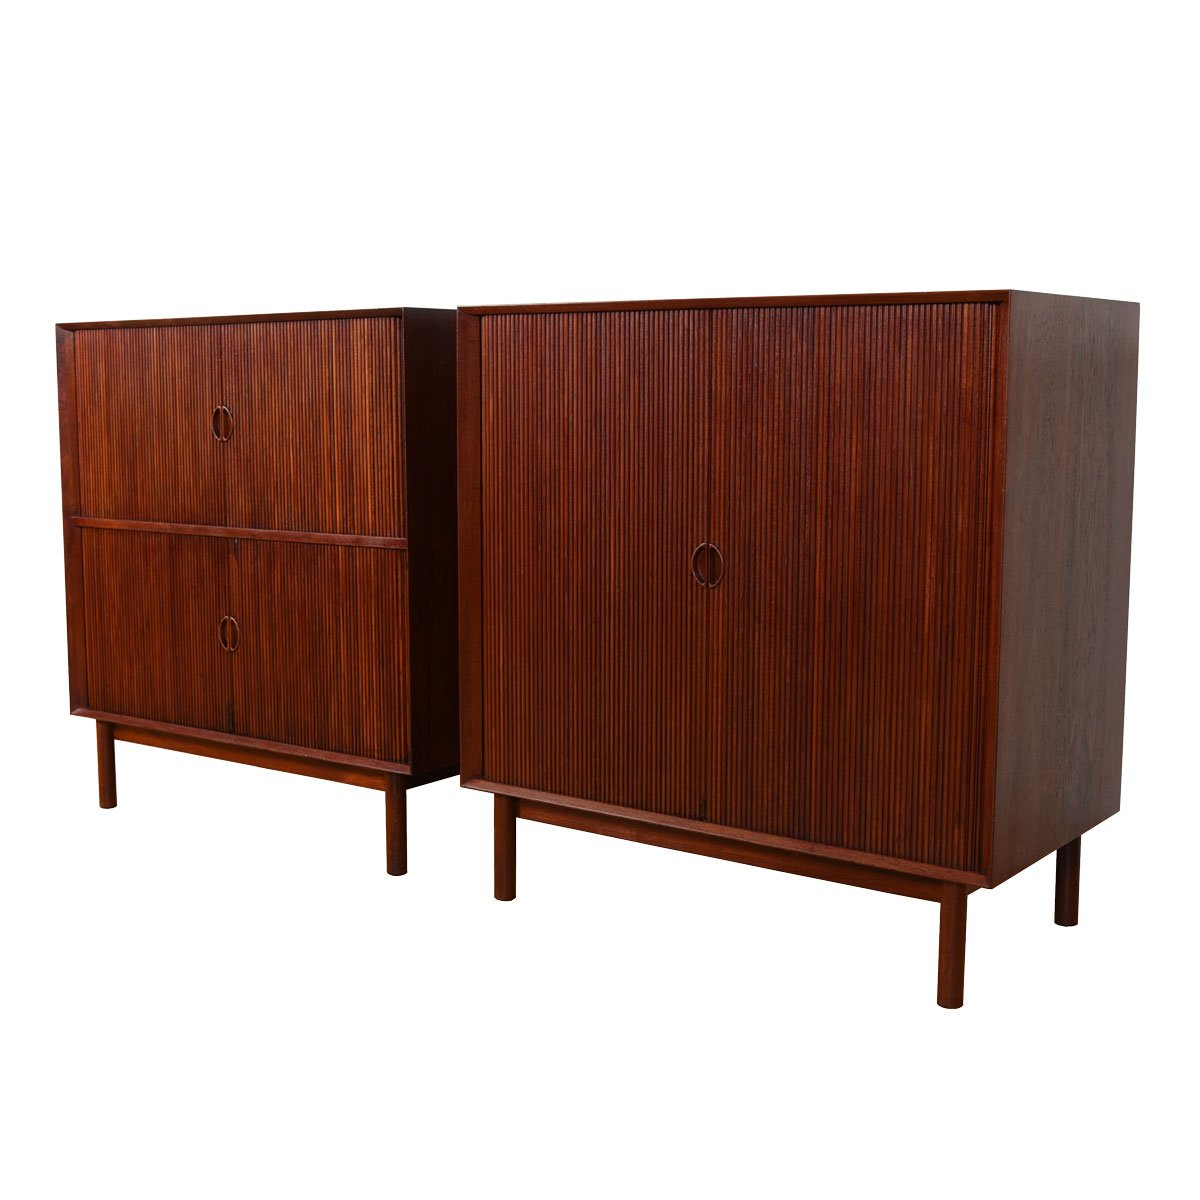 Rare Pair of Solid Teak Tambour Cabinets by Peter Hvidt for Søborg Møbler